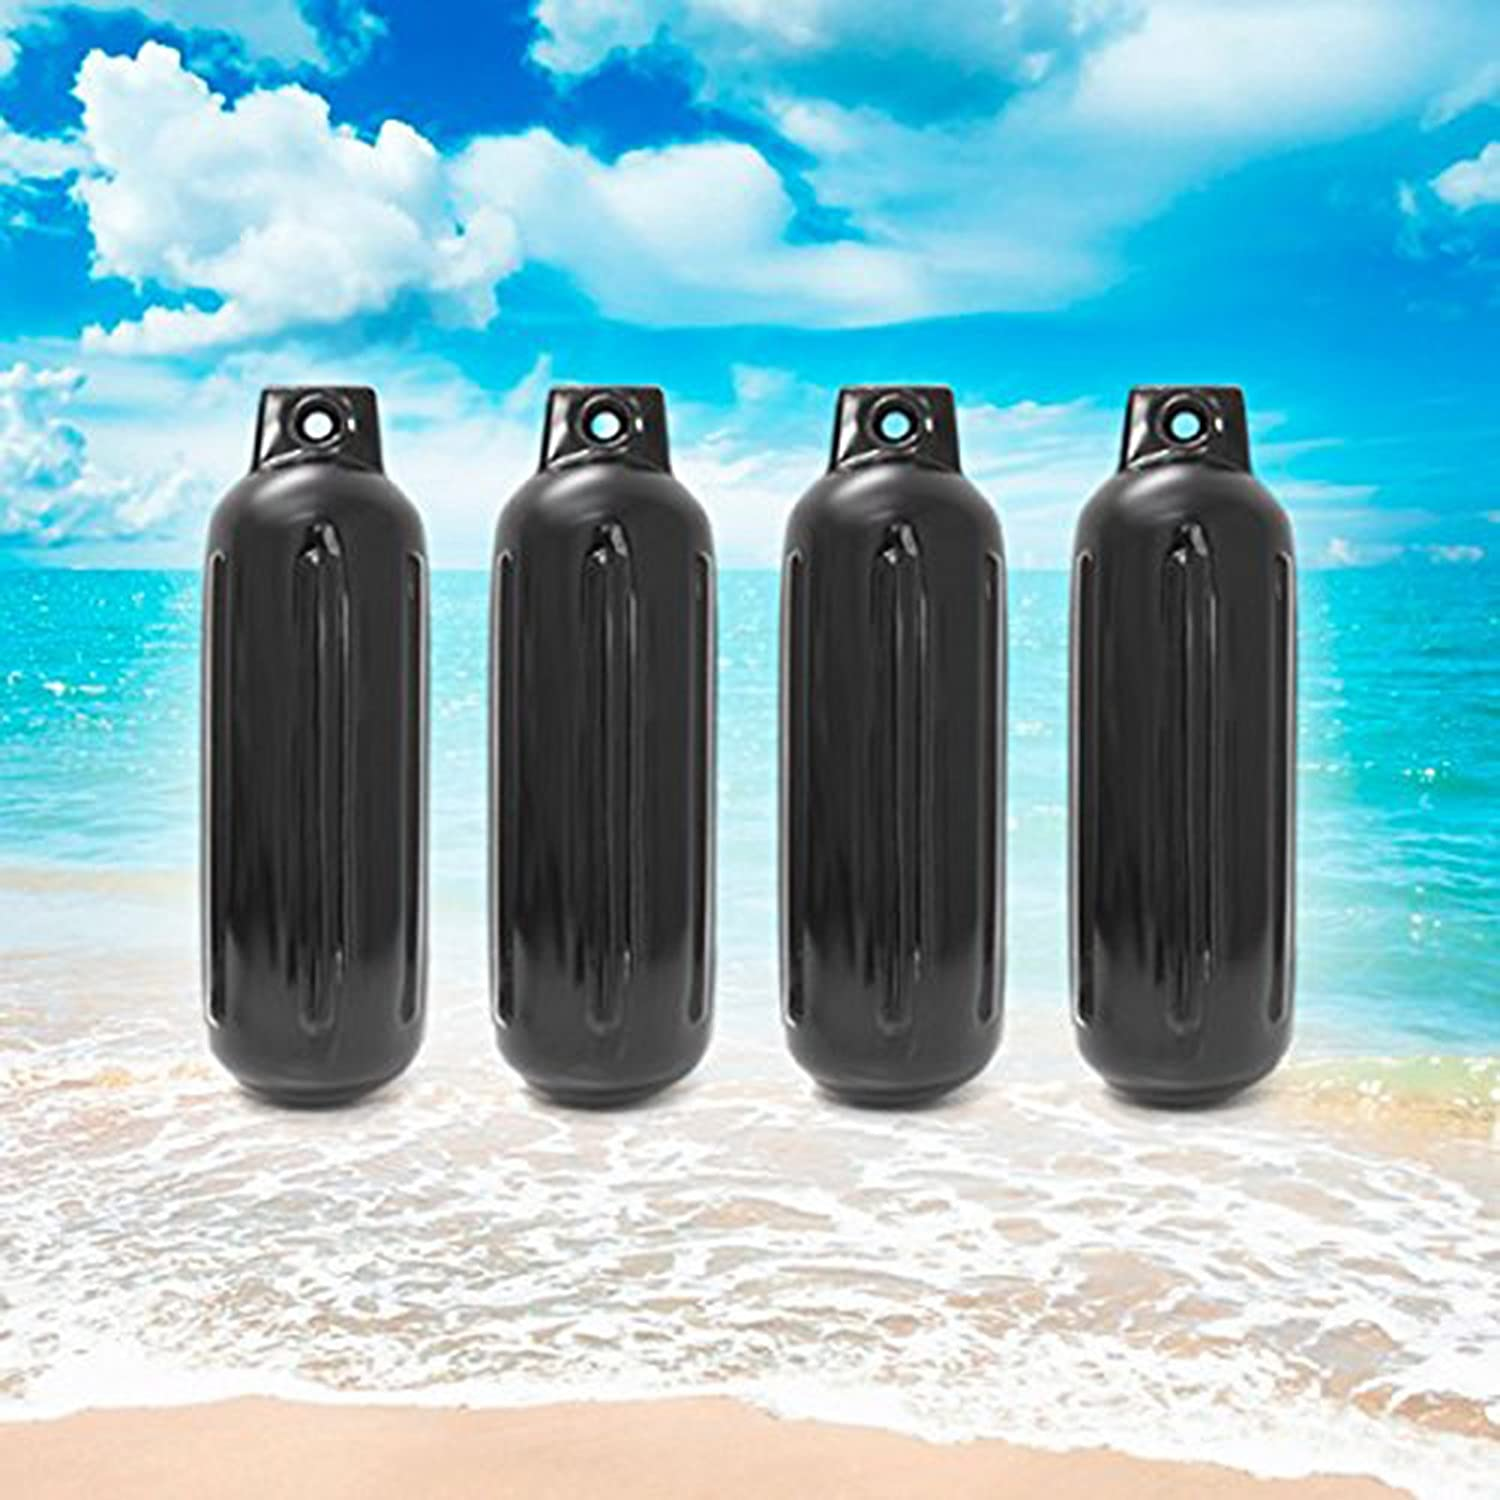 """4 NEW RIBBED BOAT FENDERS 4.5/"""" x 13/"""" BLACK SINGLE EYE BUMPERS MOORING PROTECTION"""